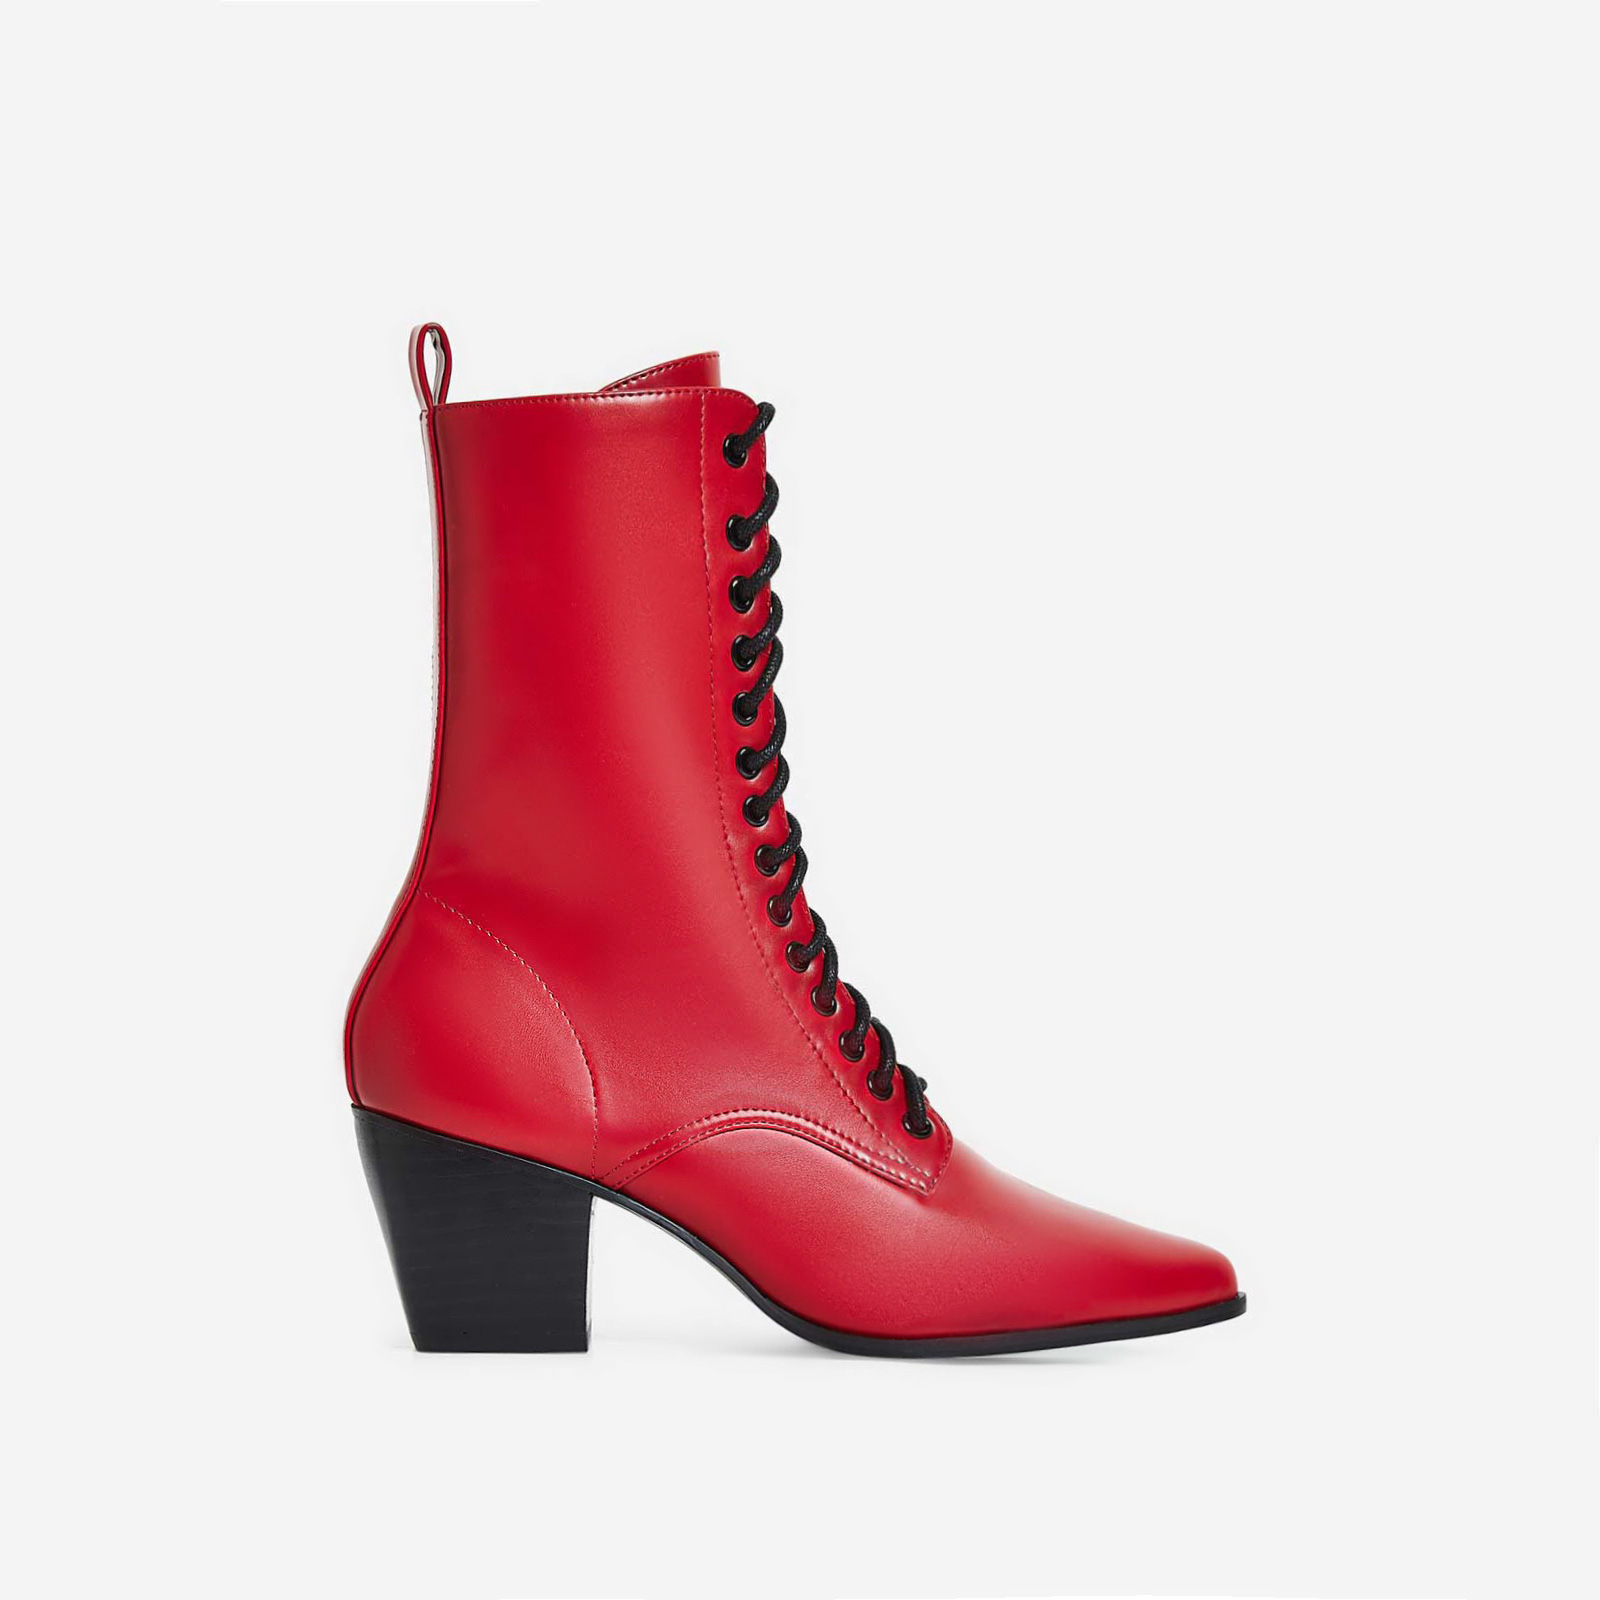 Corley Lace Up Ankle Boot In Red Faux Leather